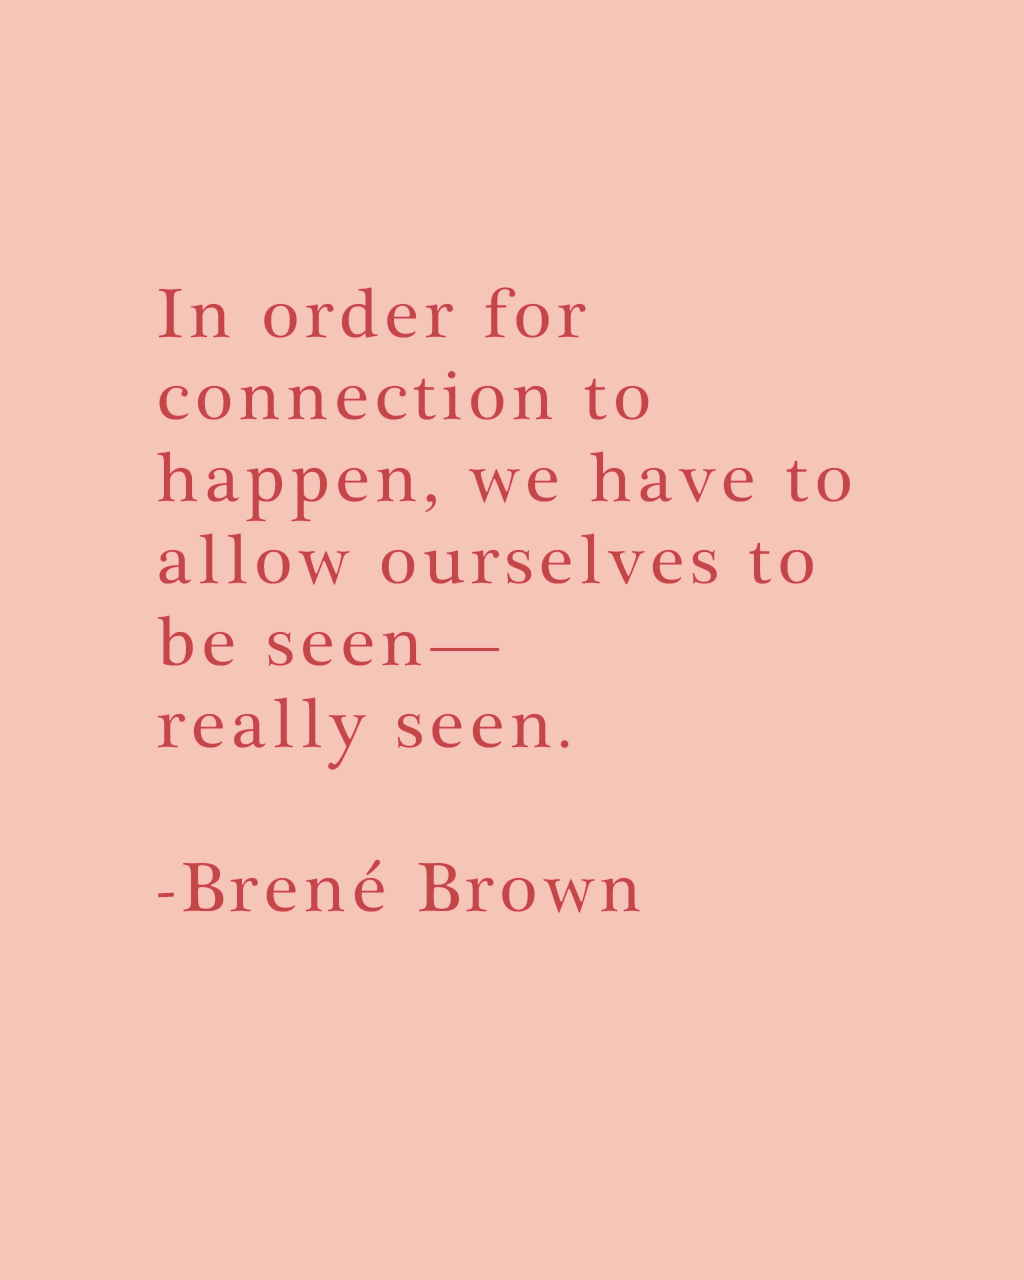 Brene-Brown-Connection-Quote.png